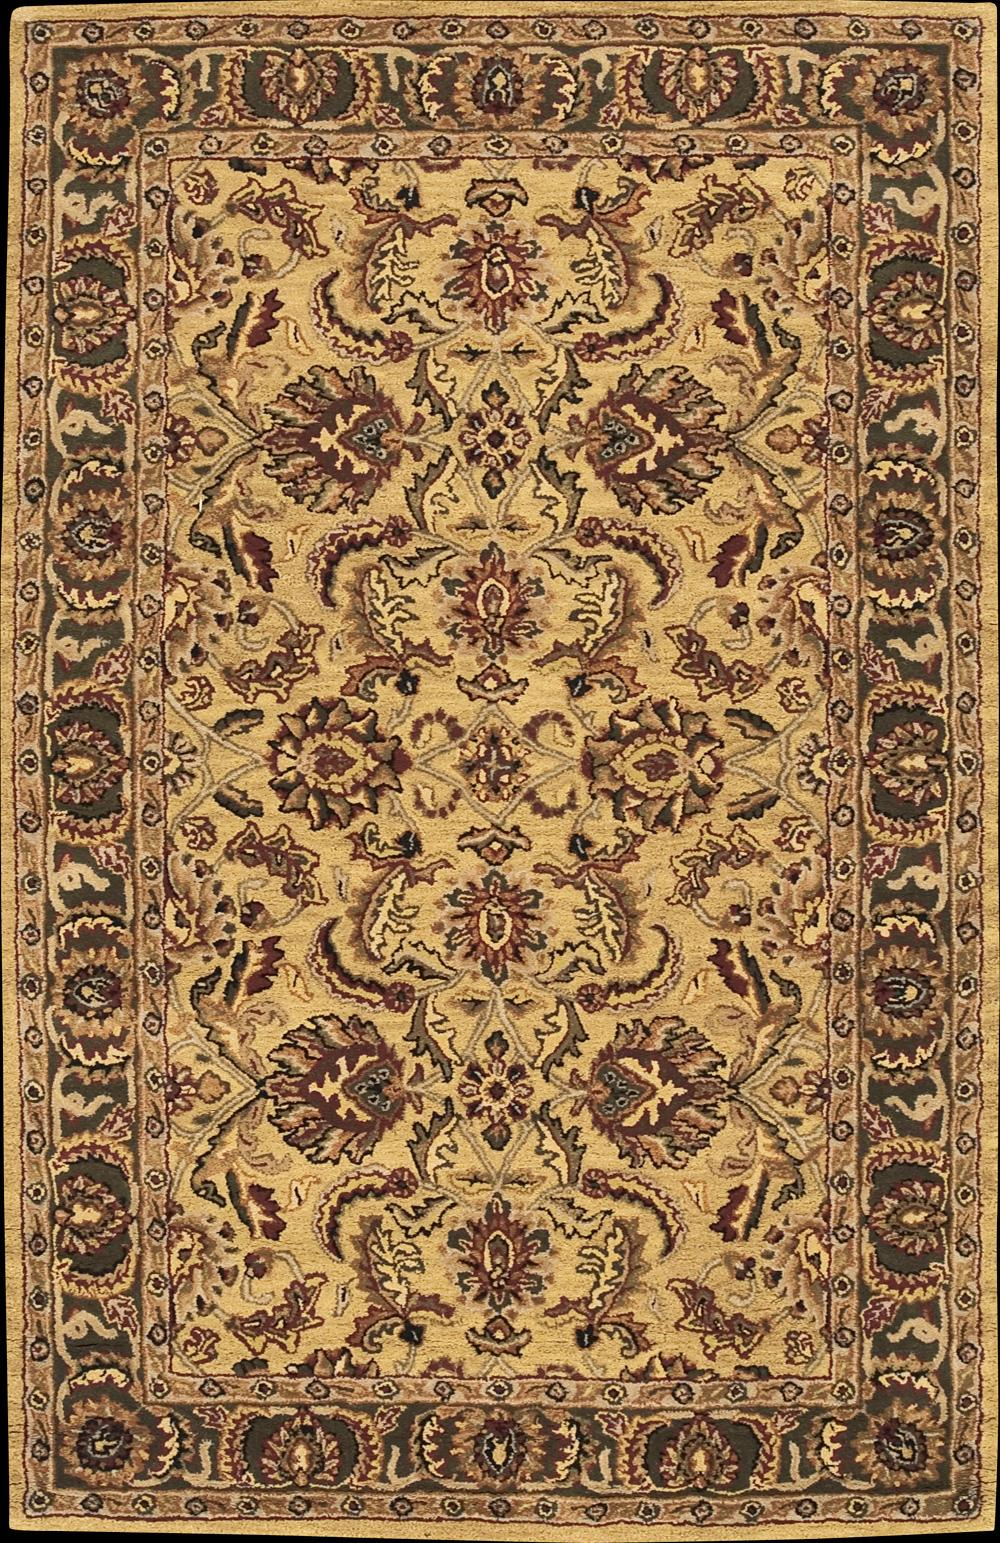 "Nourison India House Area Rug 8' x 10'6"" - Item Number: 21265"